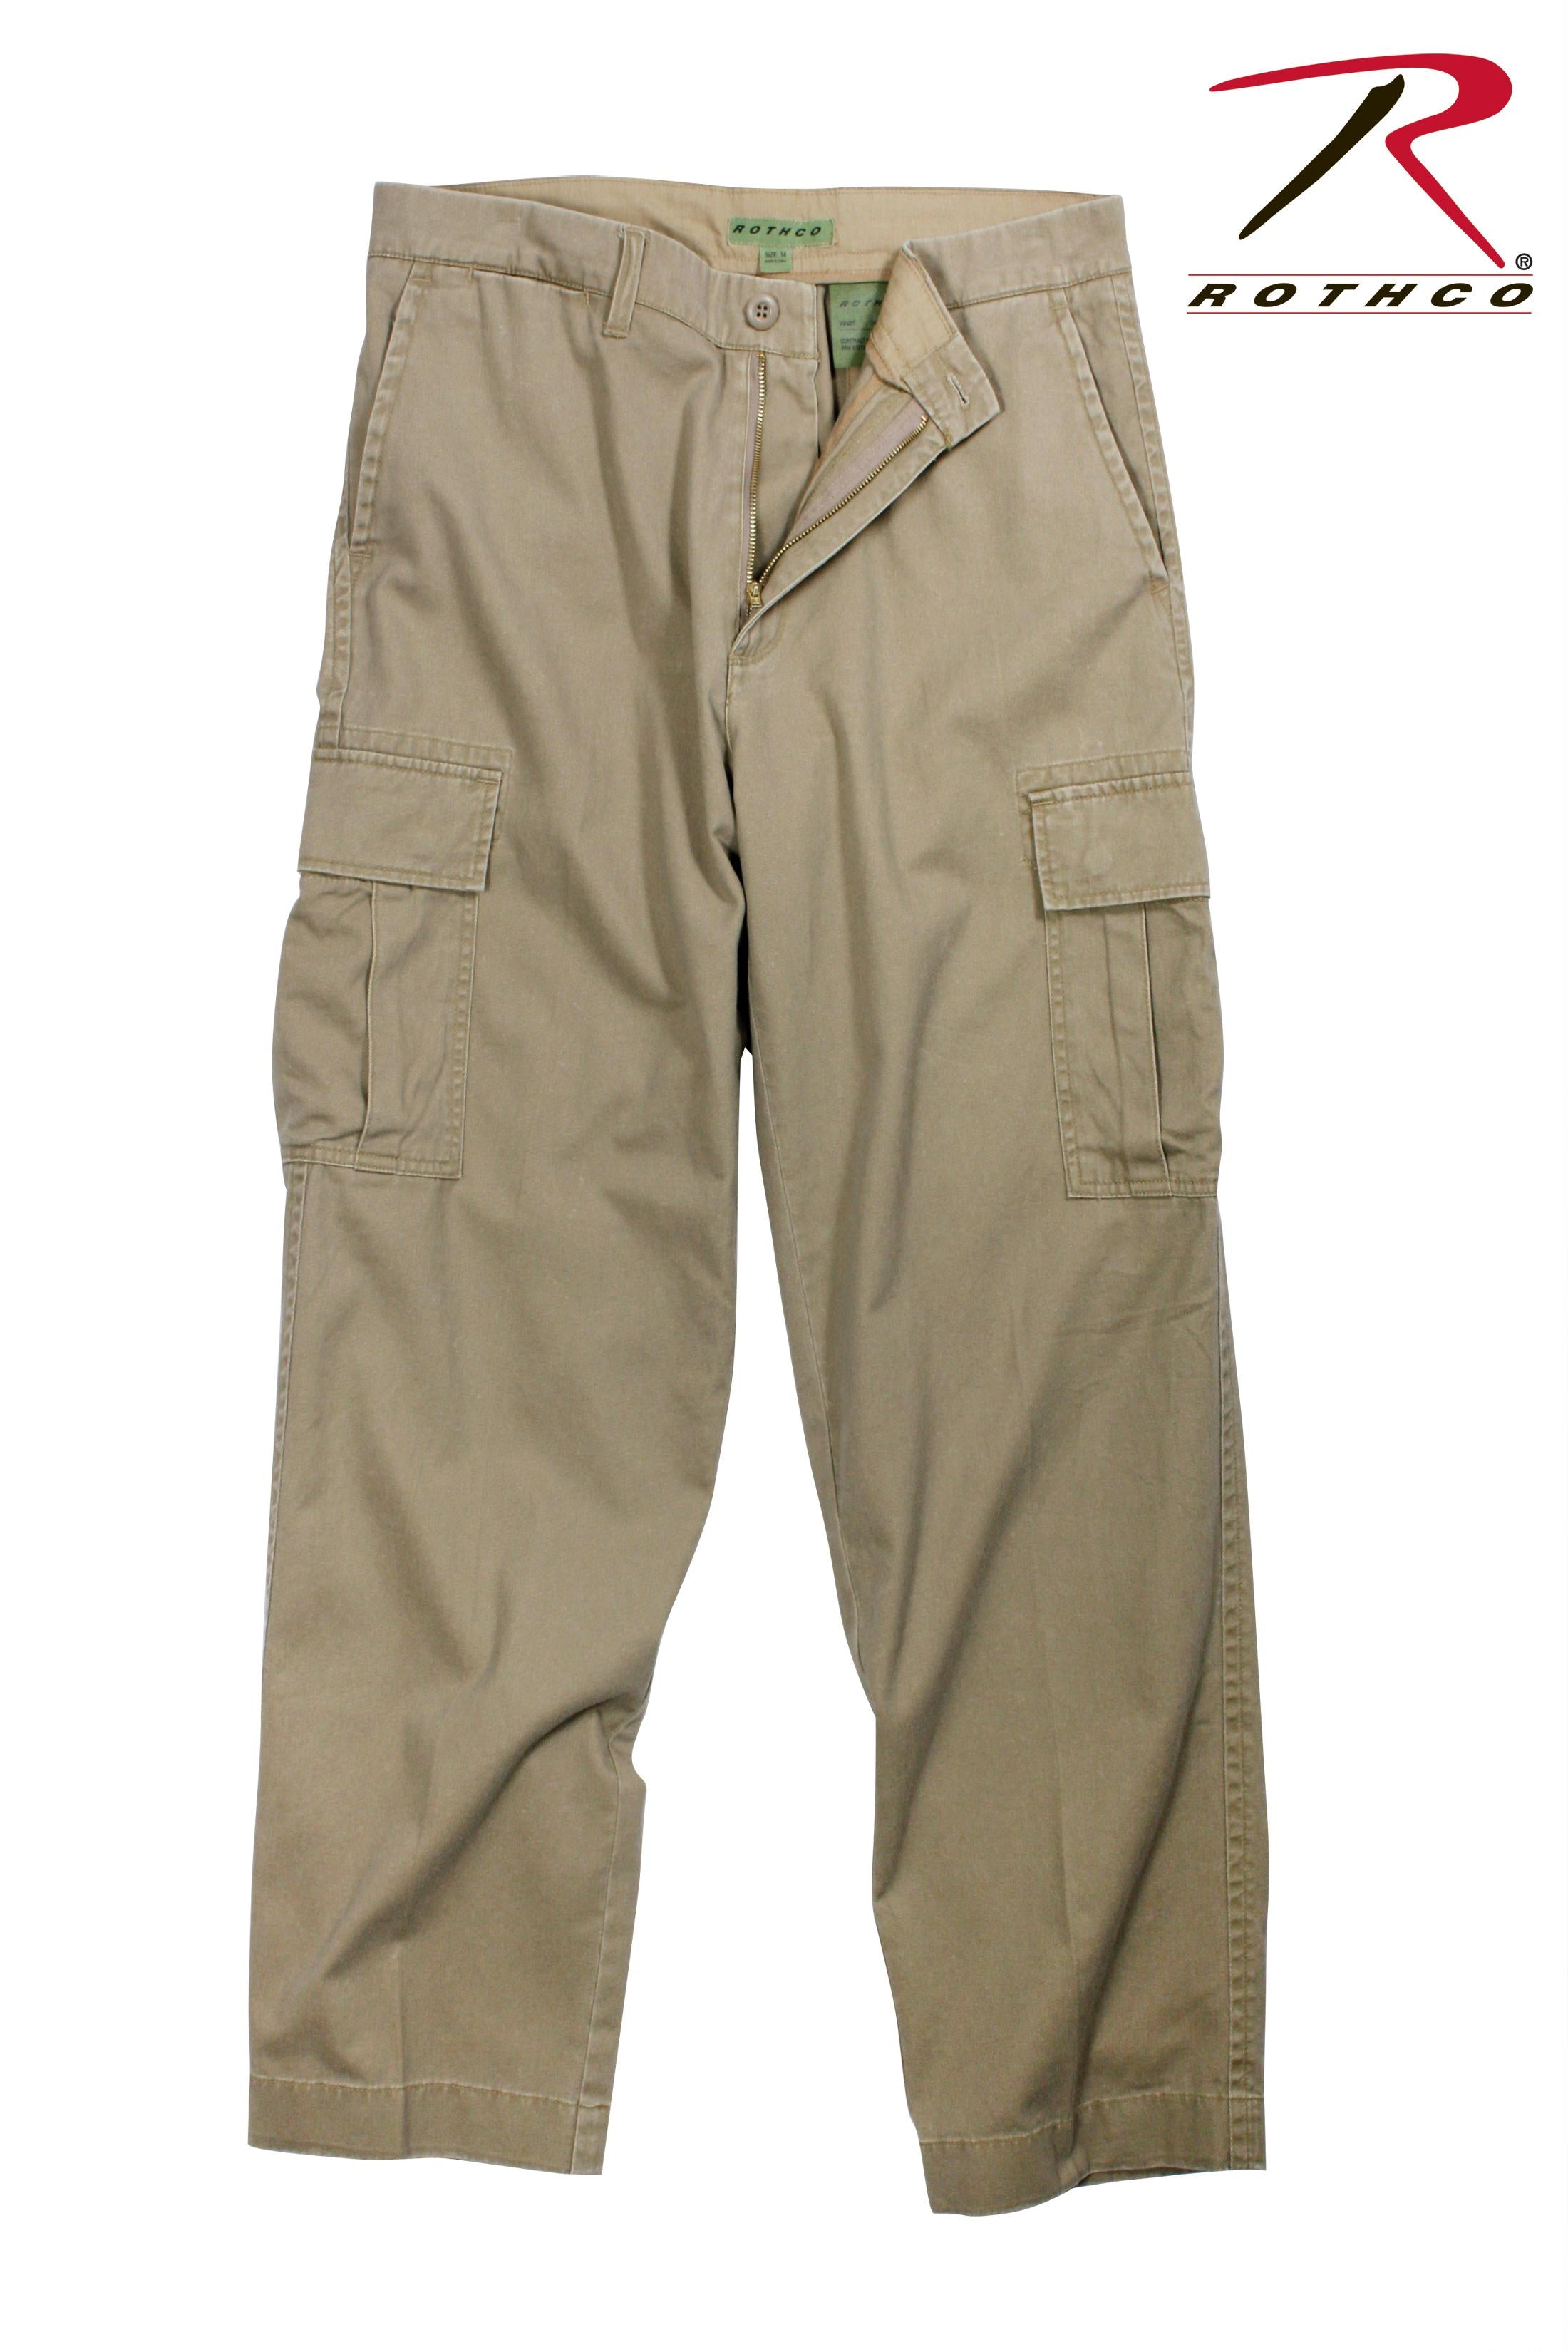 Rothco Vintage 6-Pocket Flat Front Fatigue Pants - Khaki / 40